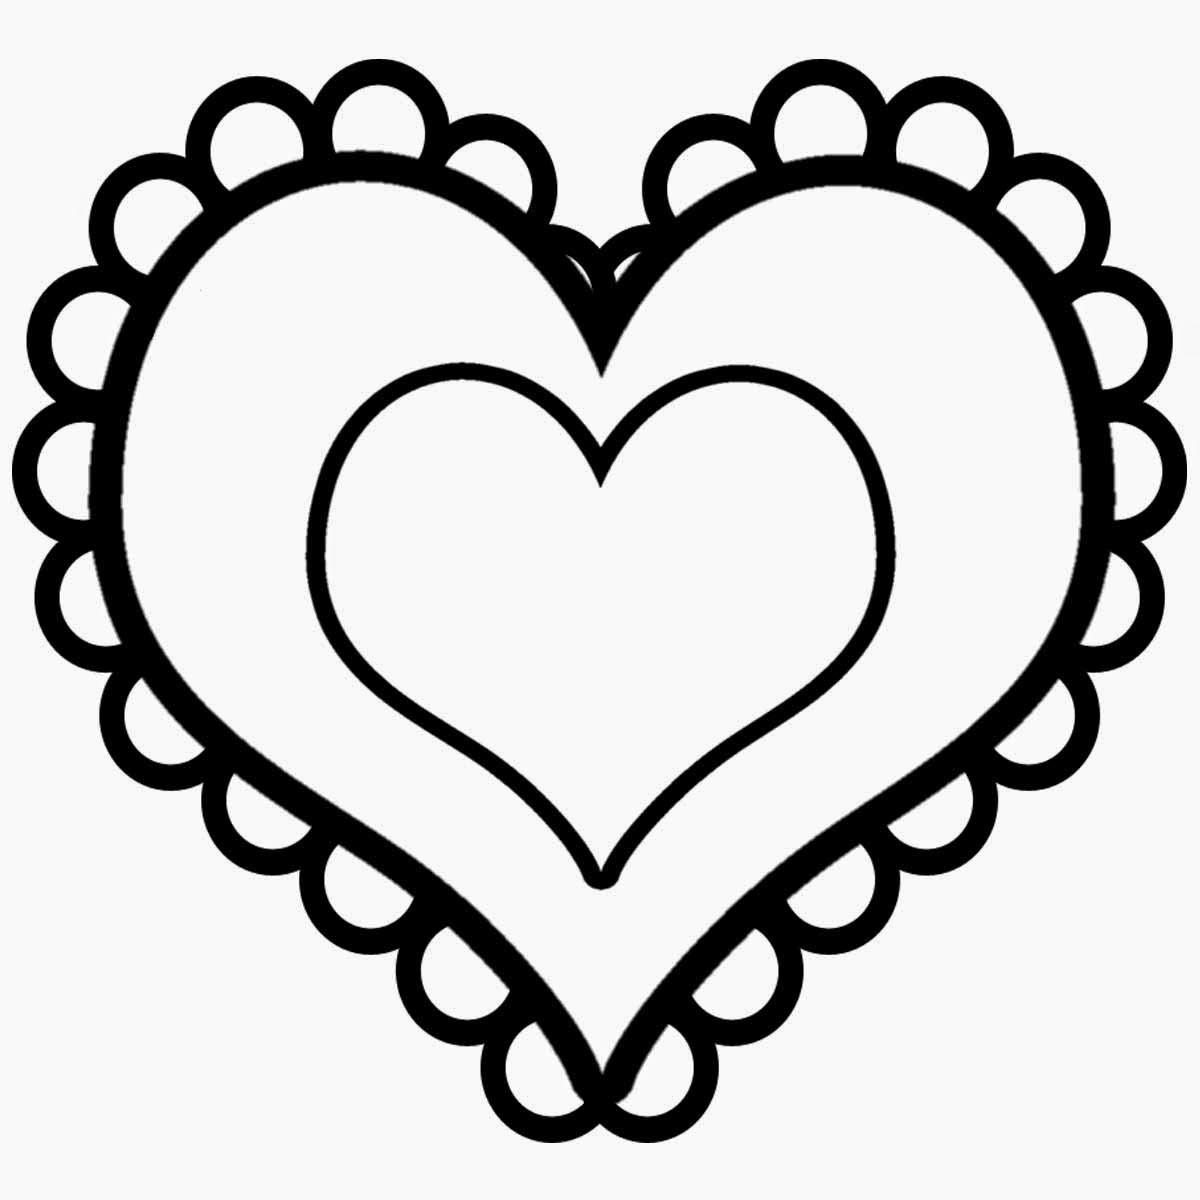 heart color sheets 35 free printable heart coloring pages color sheets heart